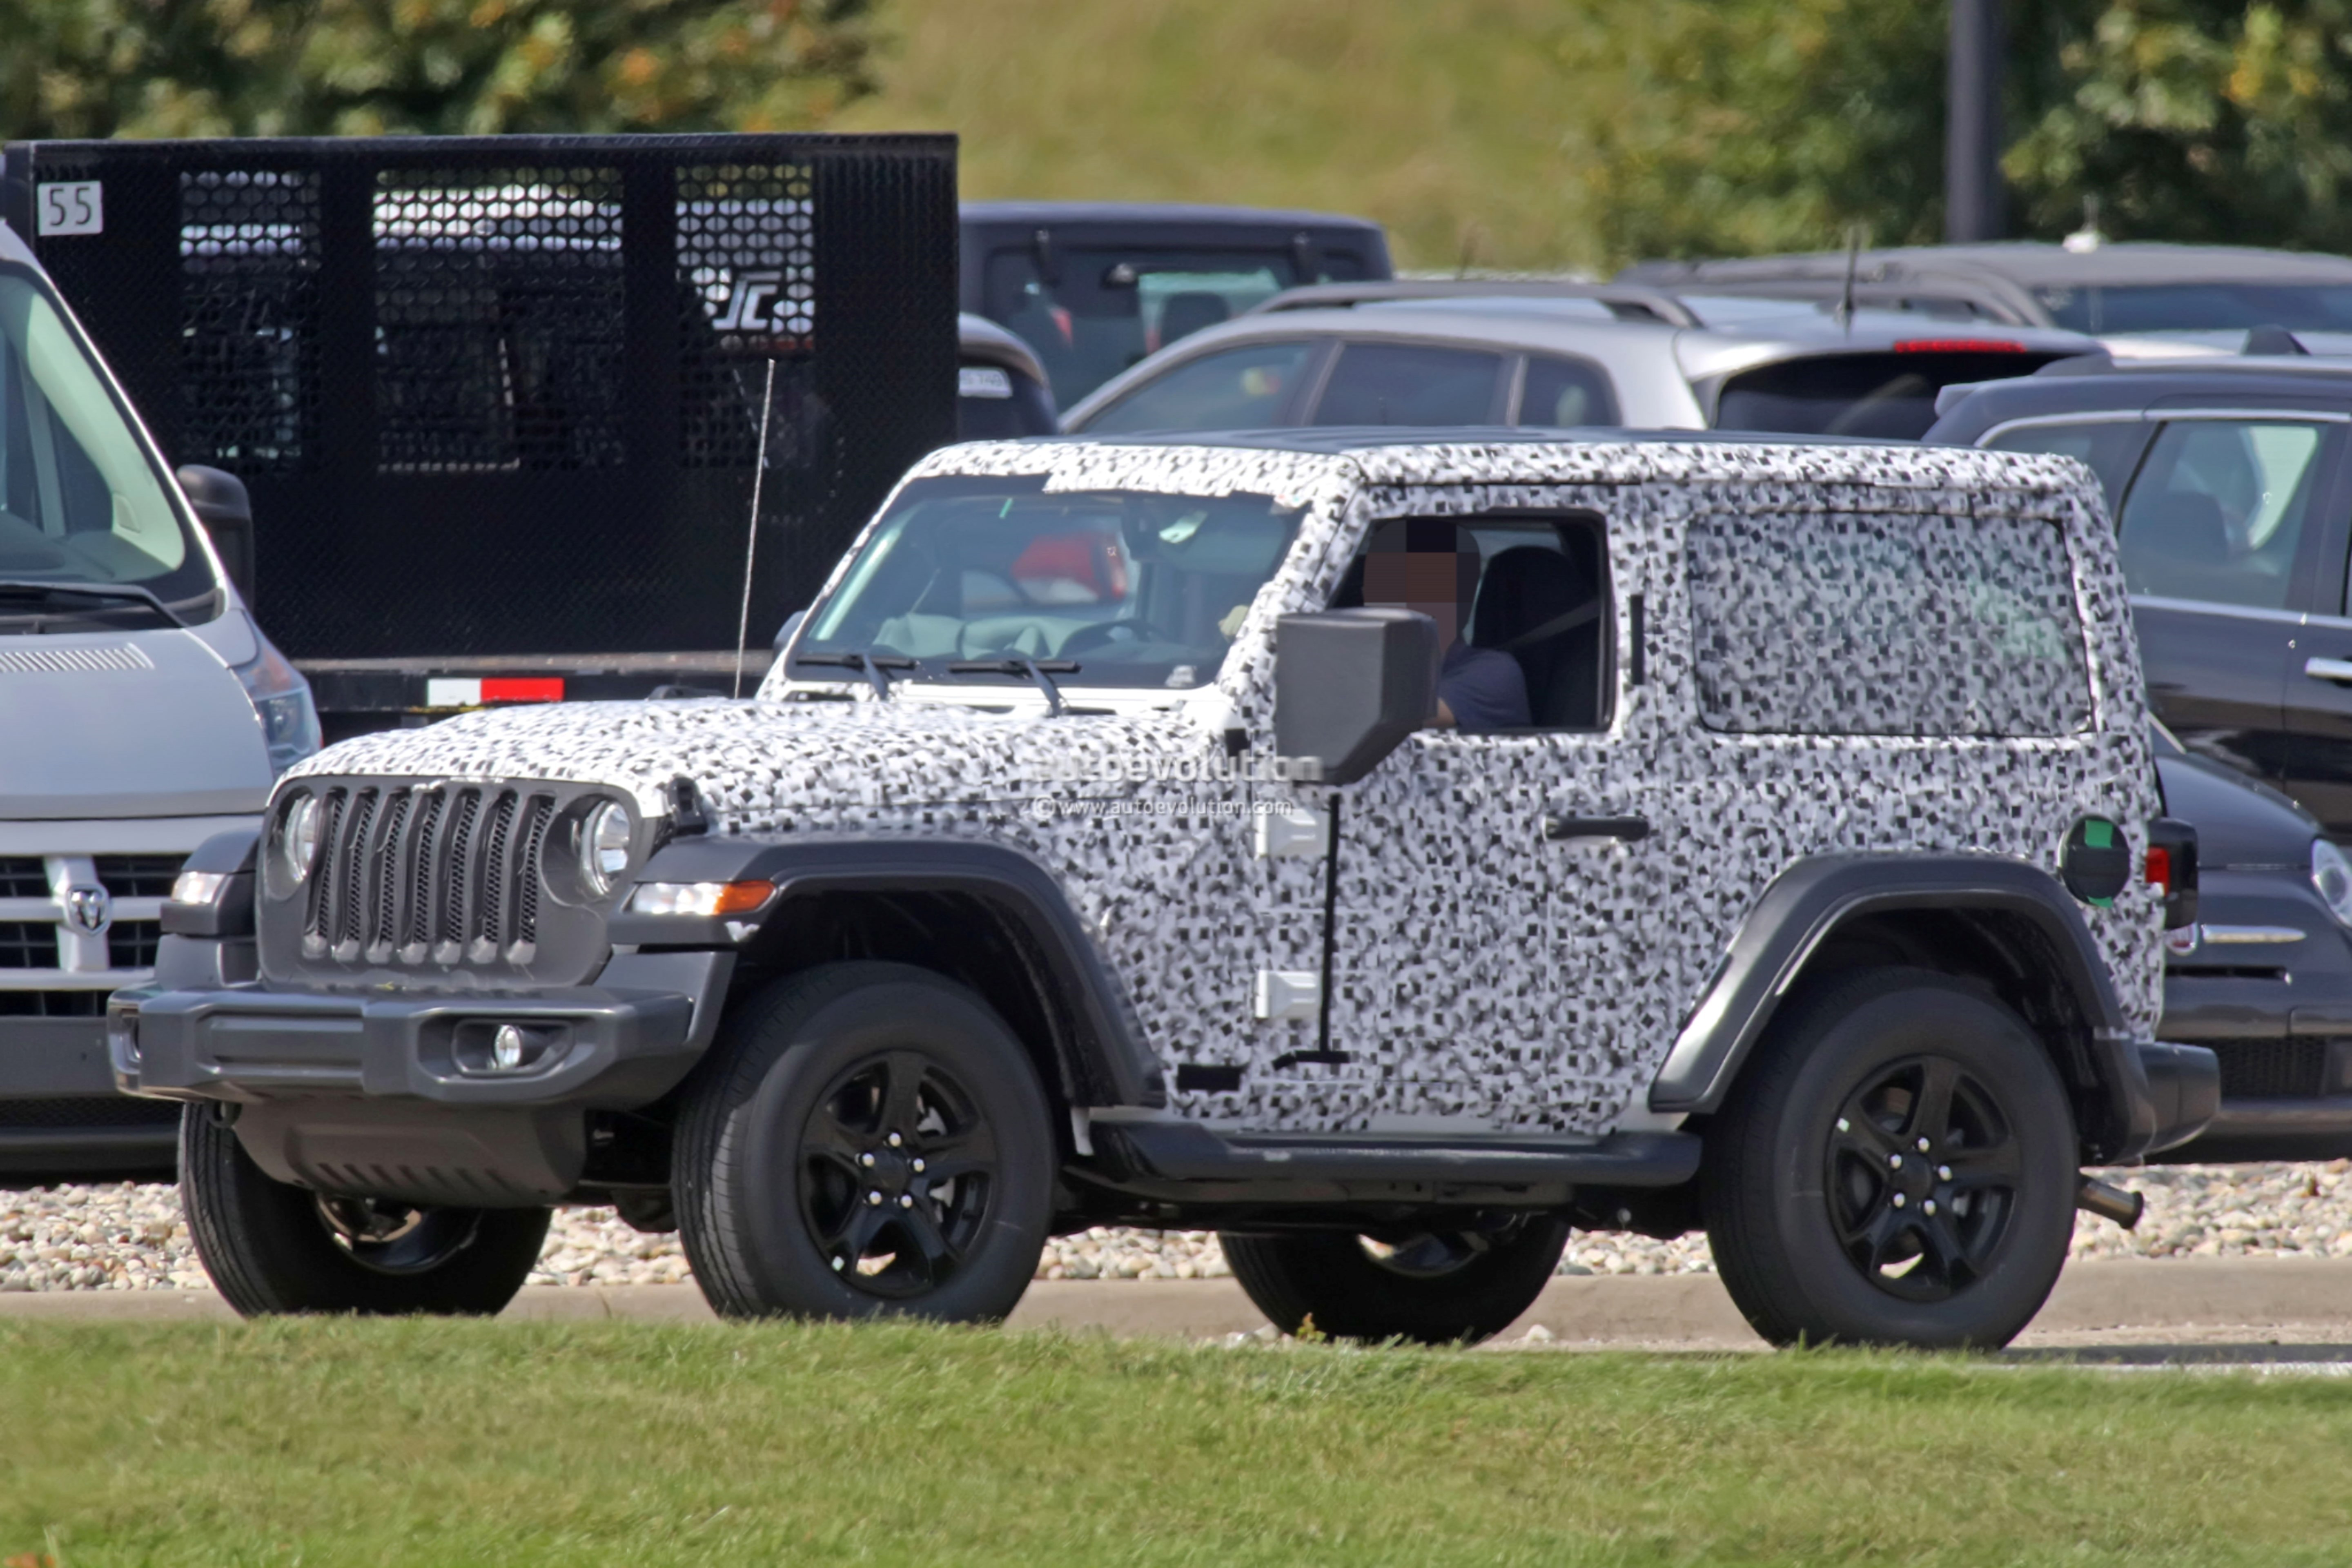 2018 - [Jeep] Wrangler - Page 3 2018-jeep-wrangler-jl-reveals-grille-and-headlights-in-newest-spy-photos_15